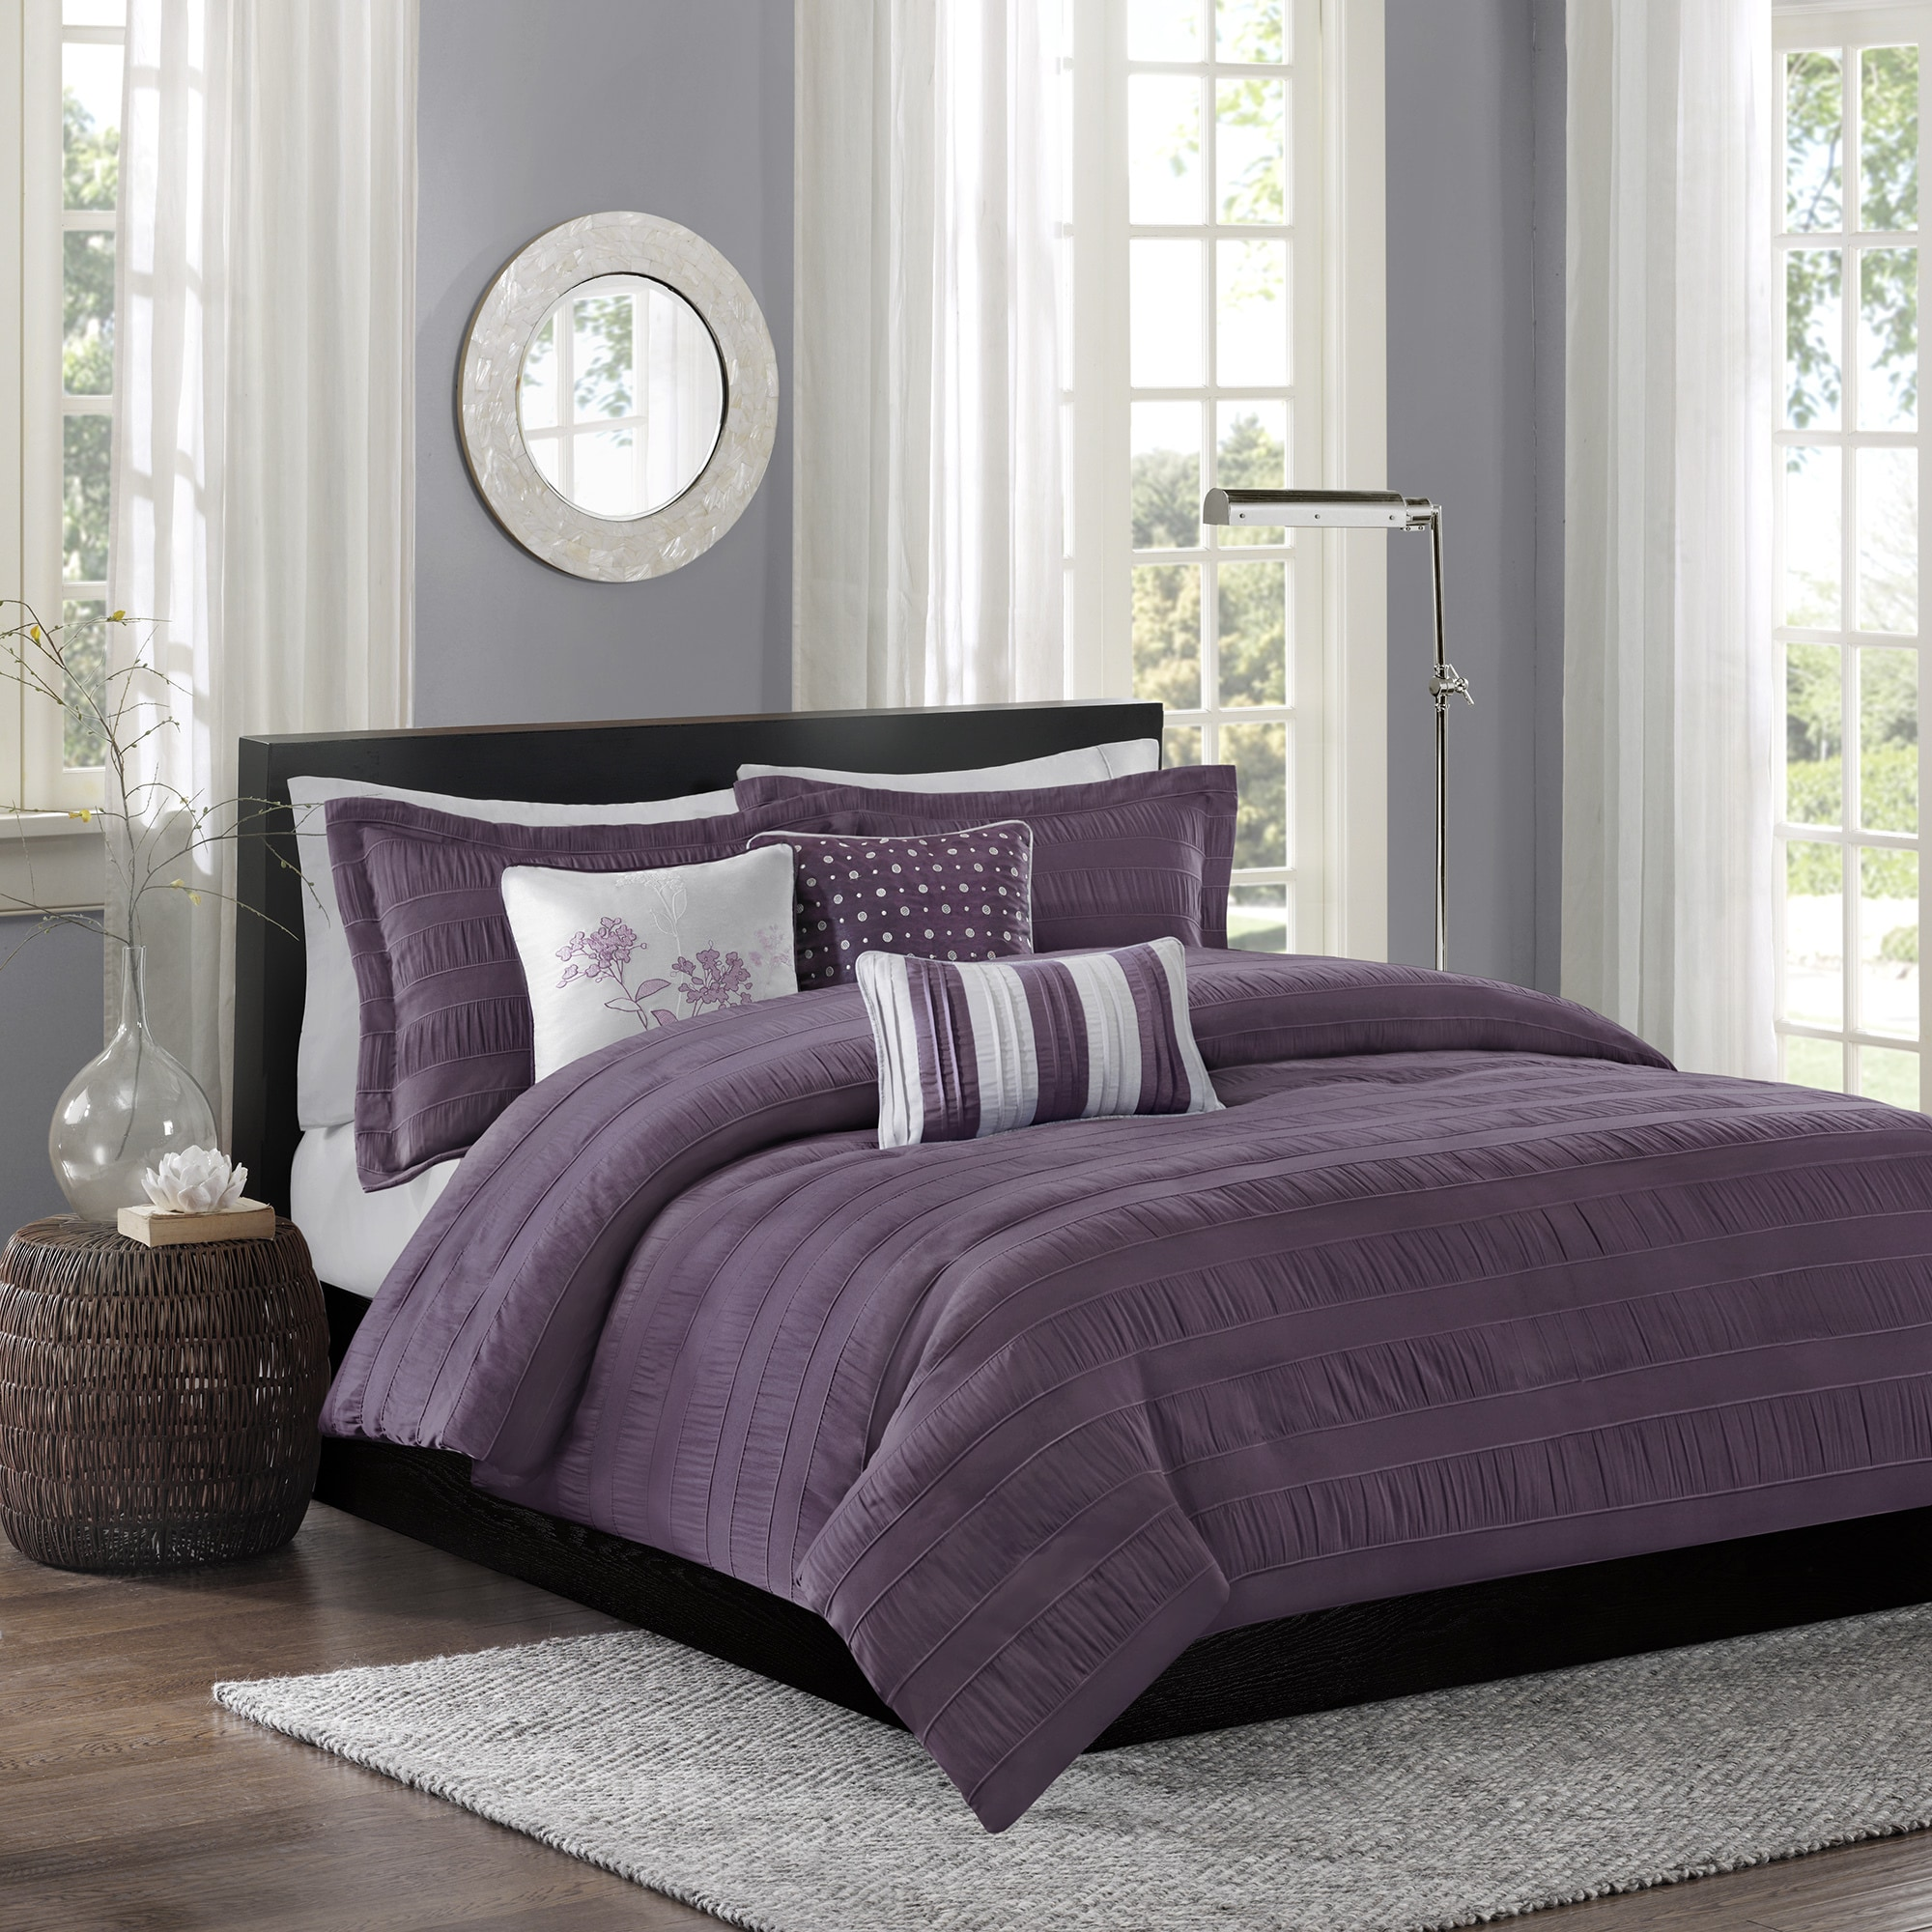 double plum cover at set bed chartwell q como departments quilt prd diy bq b